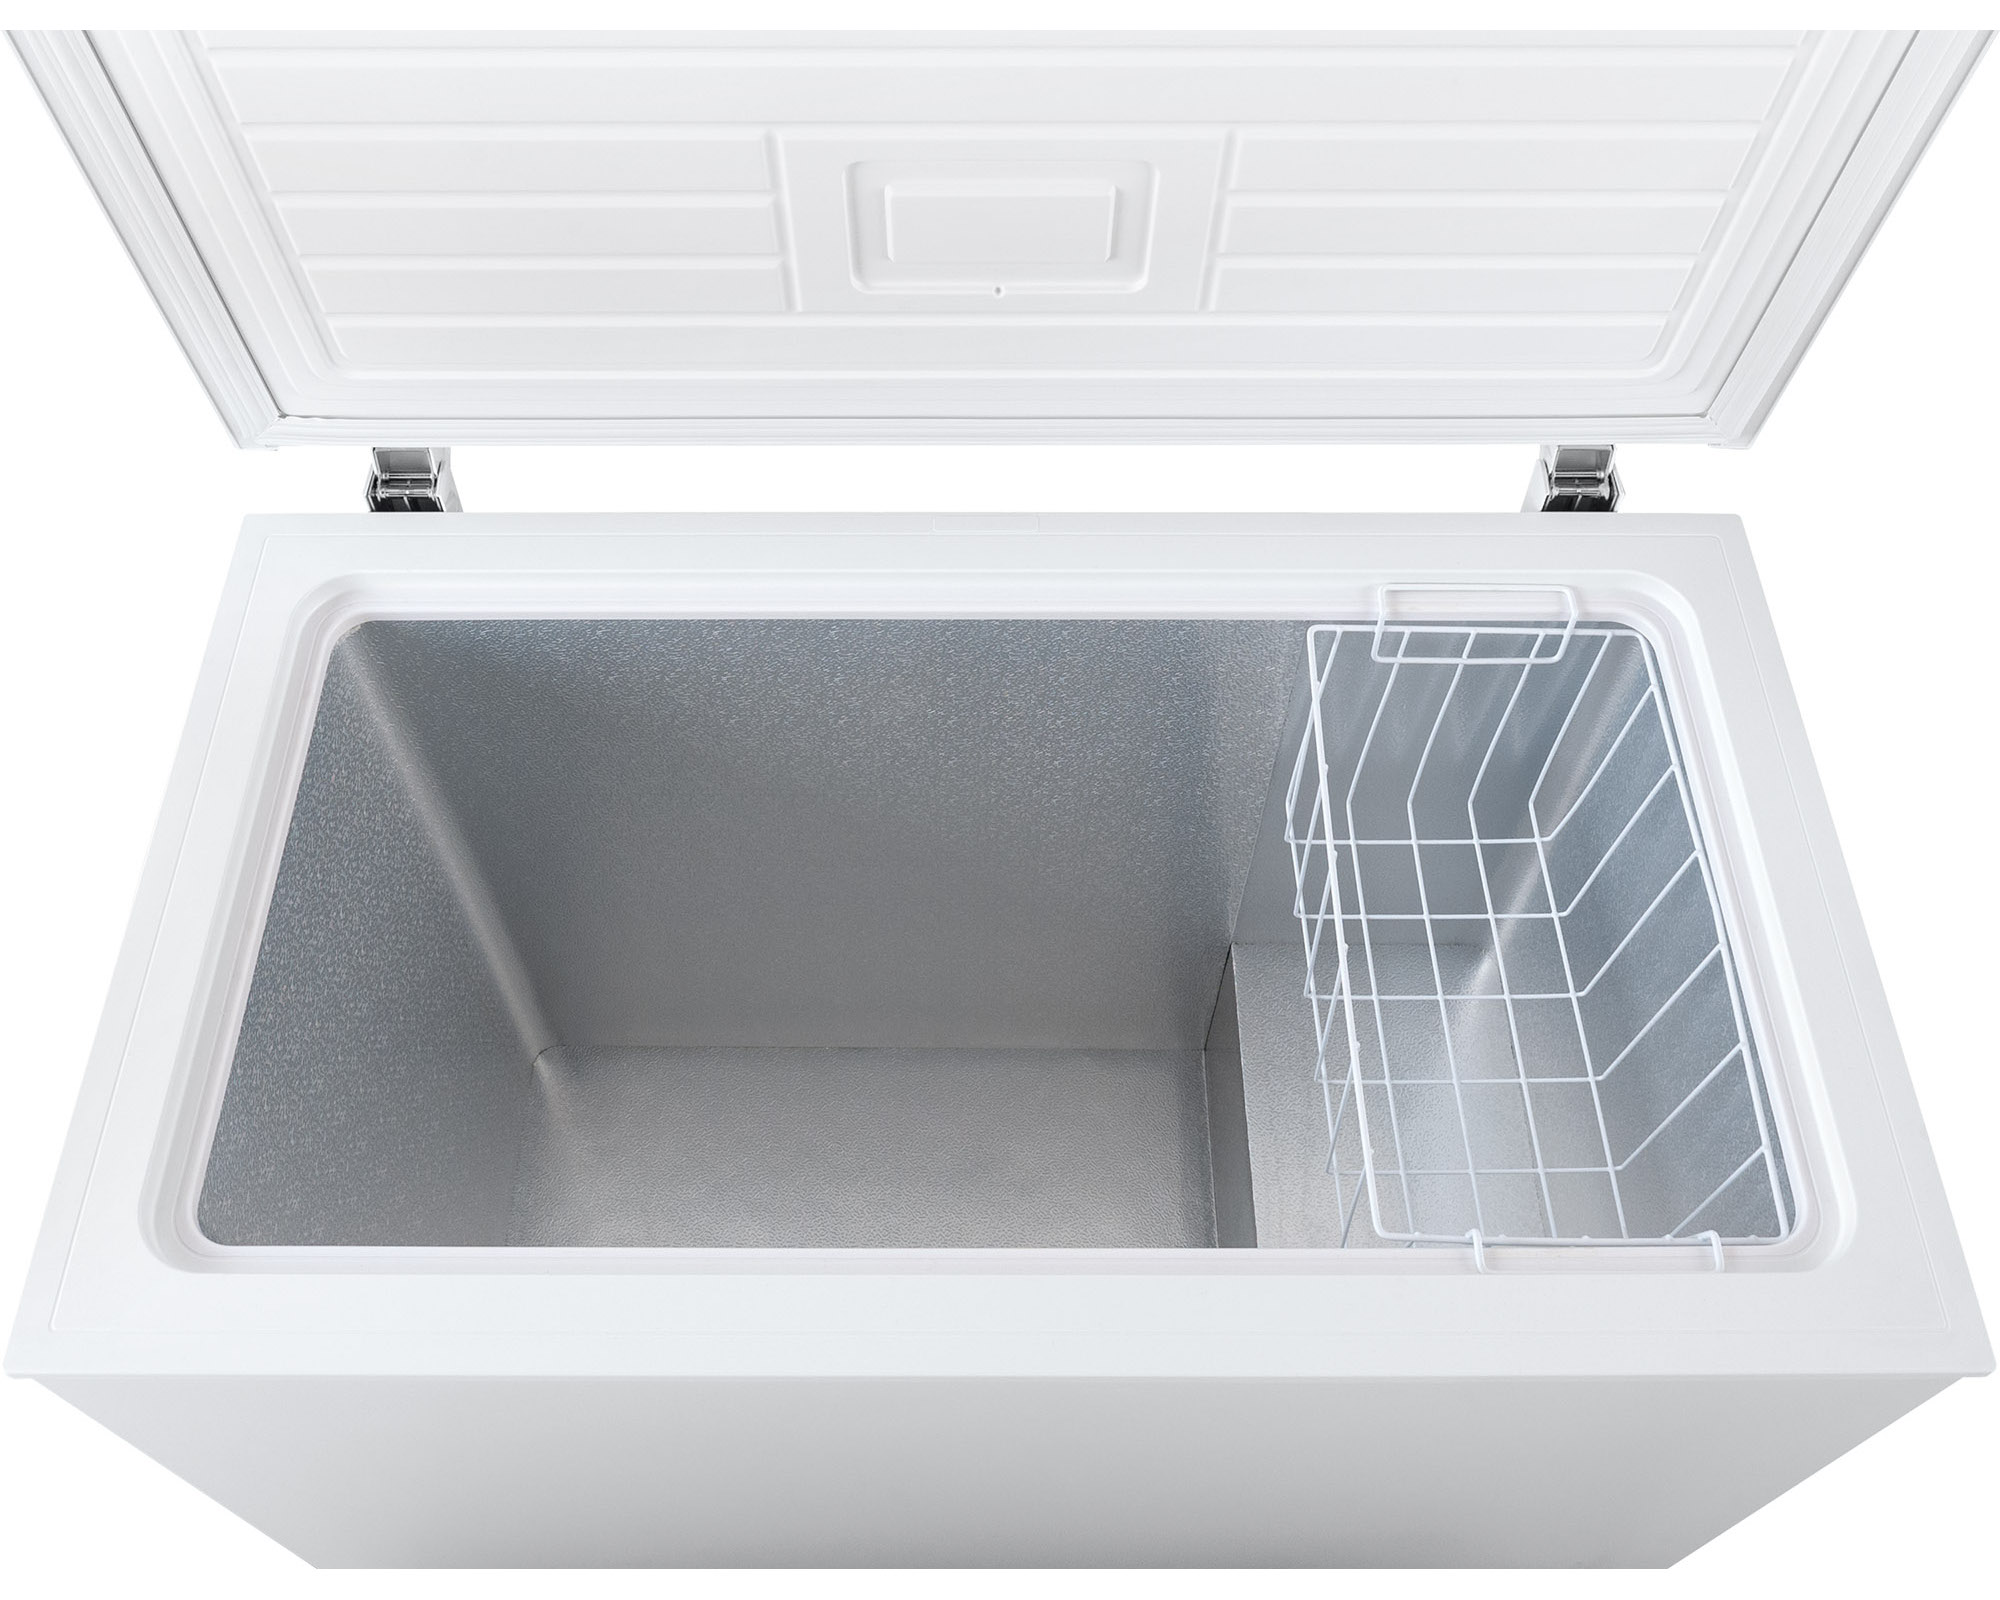 Kenmore 12902 8.8 cu. ft. Chest Freezer - White